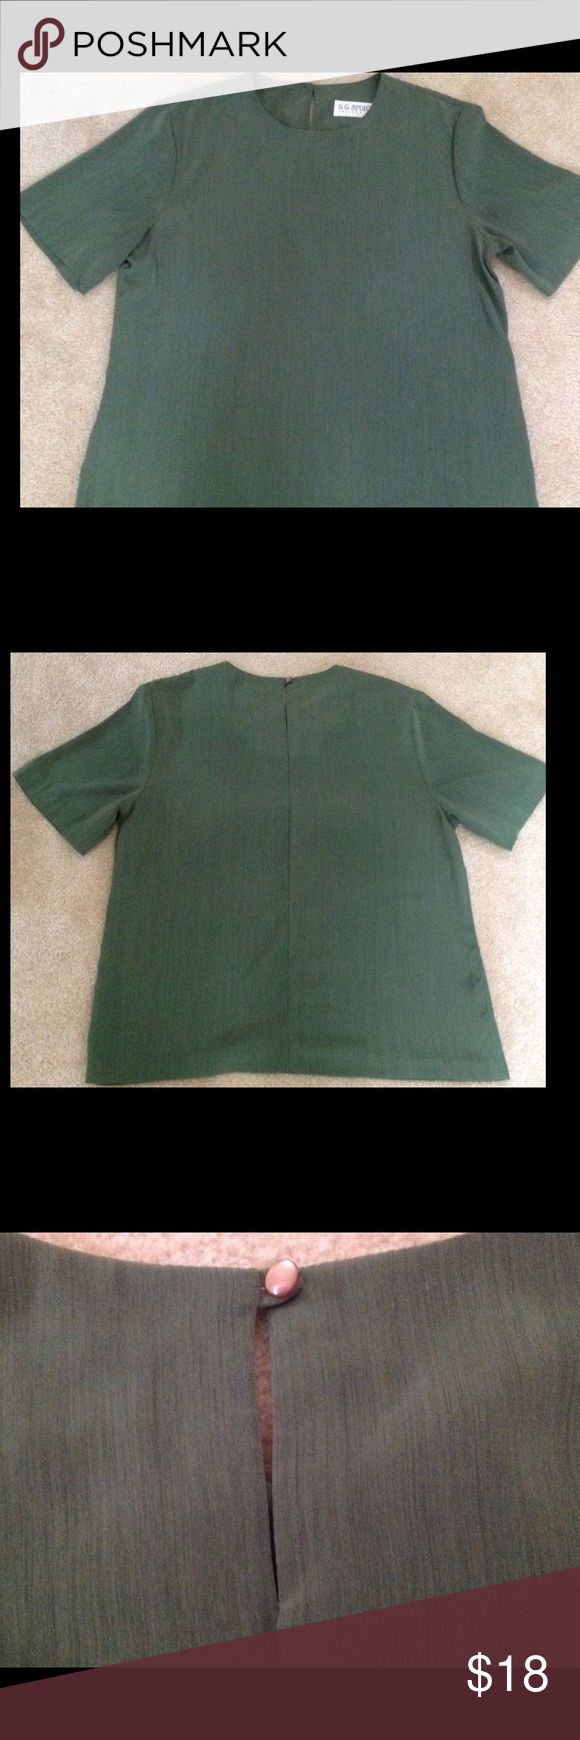 """Vintage Susan Graver Olive Green Size Medium Shell Susan Graver designs timeless clothing pieces. This vintage short-sleeved shell is no exception. It is easy to pull on because there is a button closure in the back.  The fabric is a slinky microfiber that makes the green almost appear to be striated.  It is well-made with a neck facing that gives the neckline body and substance.  The sleeves are the perfect length - allowing for good coverage.  The top measures 25."""" Machine wash and tumble…"""